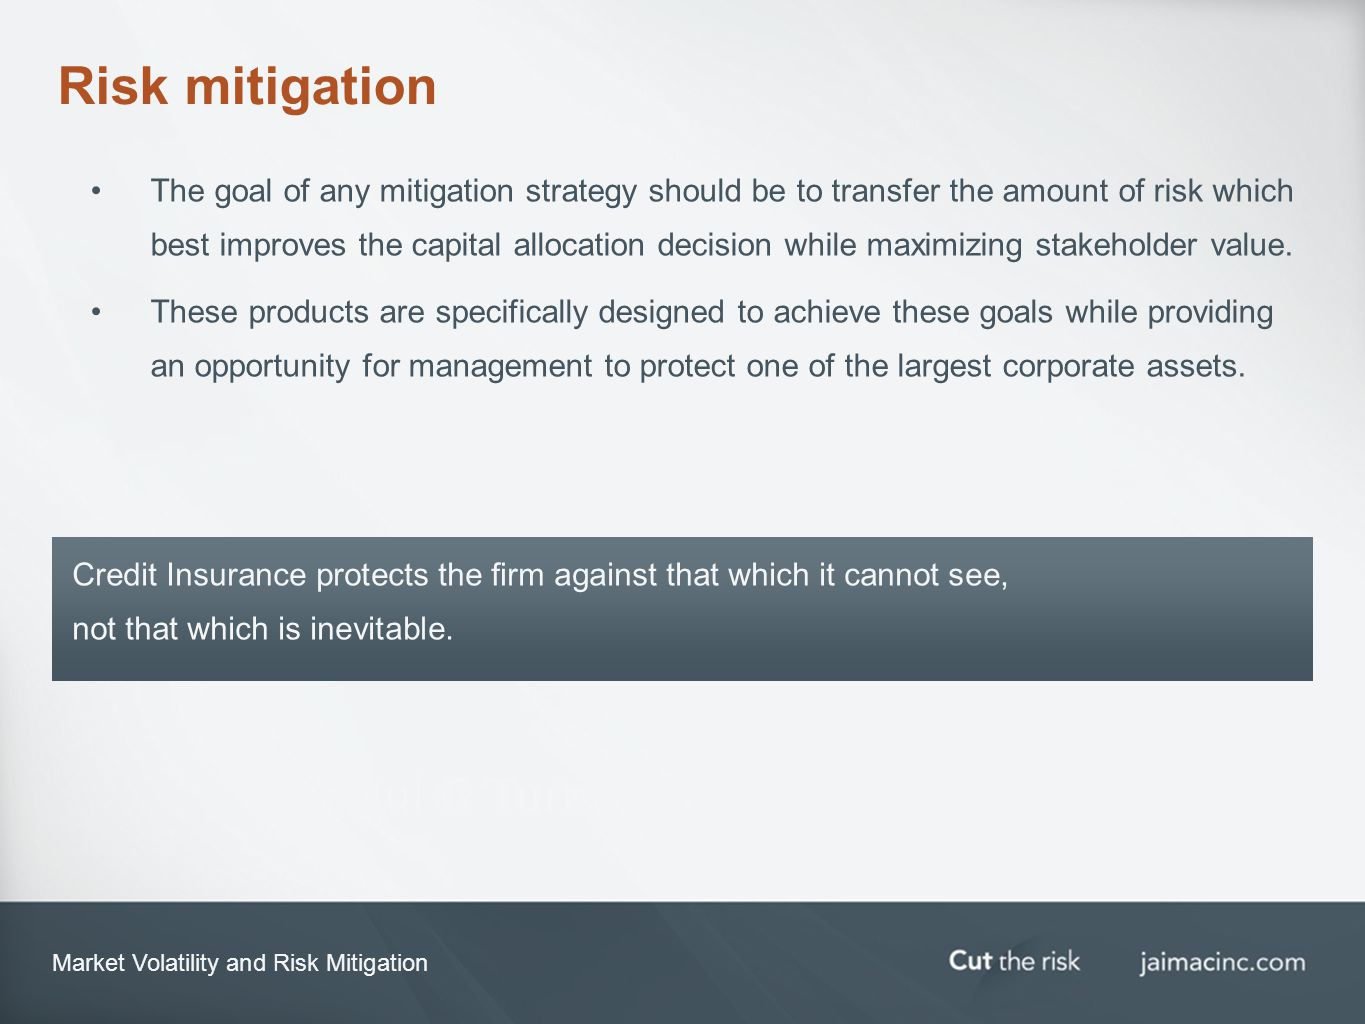 Market Volatility and Risk Mitigation Risk mitigation The goal of any mitigation strategy should be to transfer the amount of risk which best improves